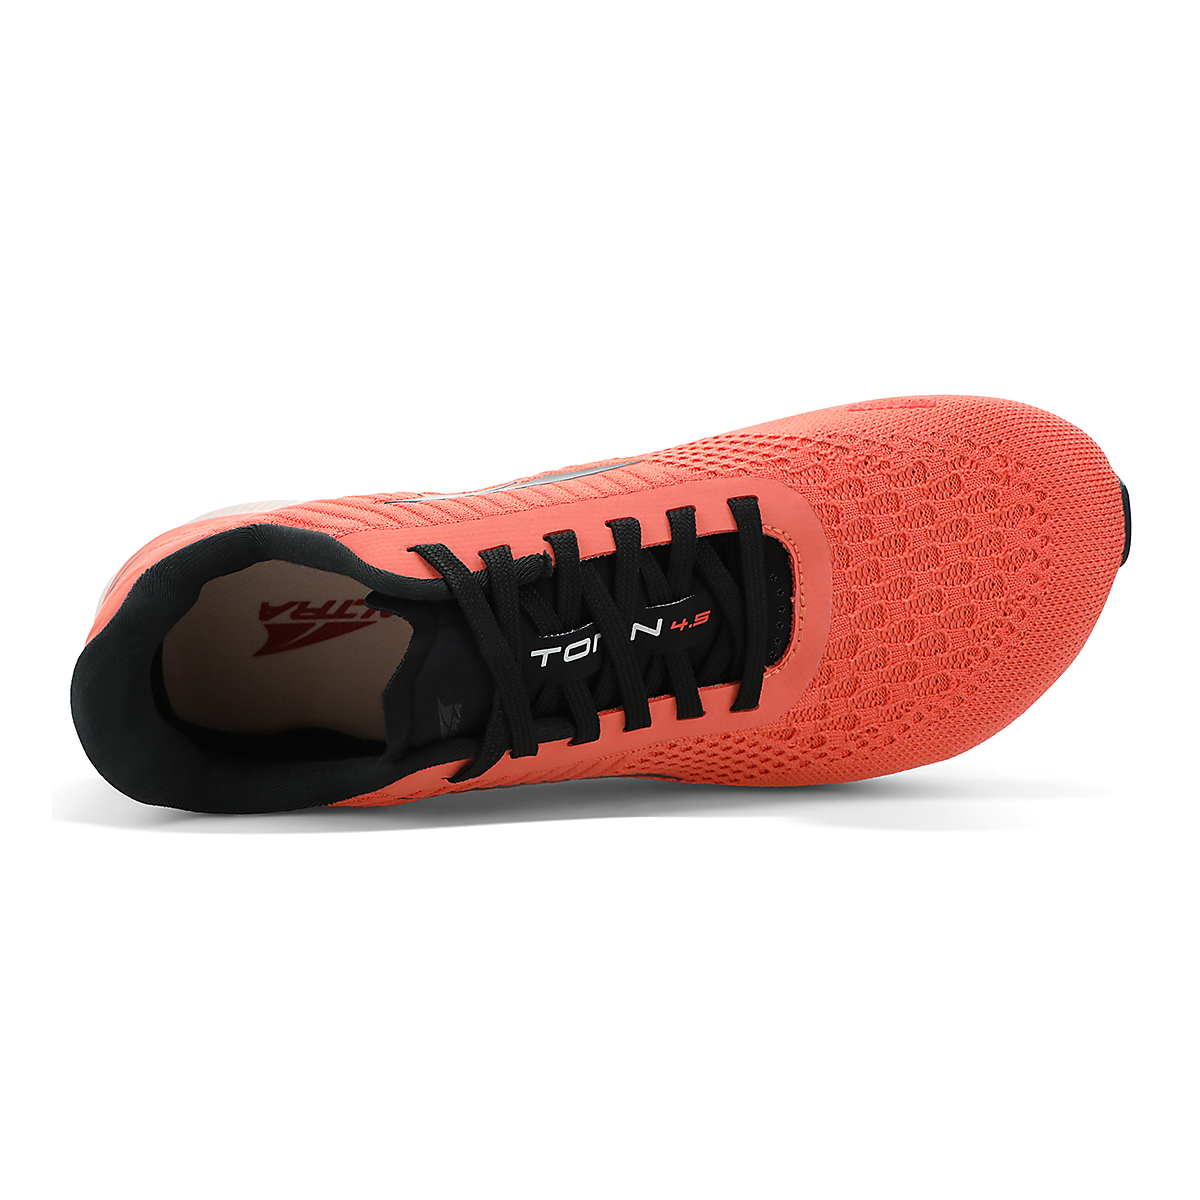 Women's Altra Torin 4.5 Plush Running Shoe - Color: Coral - Size: 5.5 - Width: Regular, Coral, large, image 3